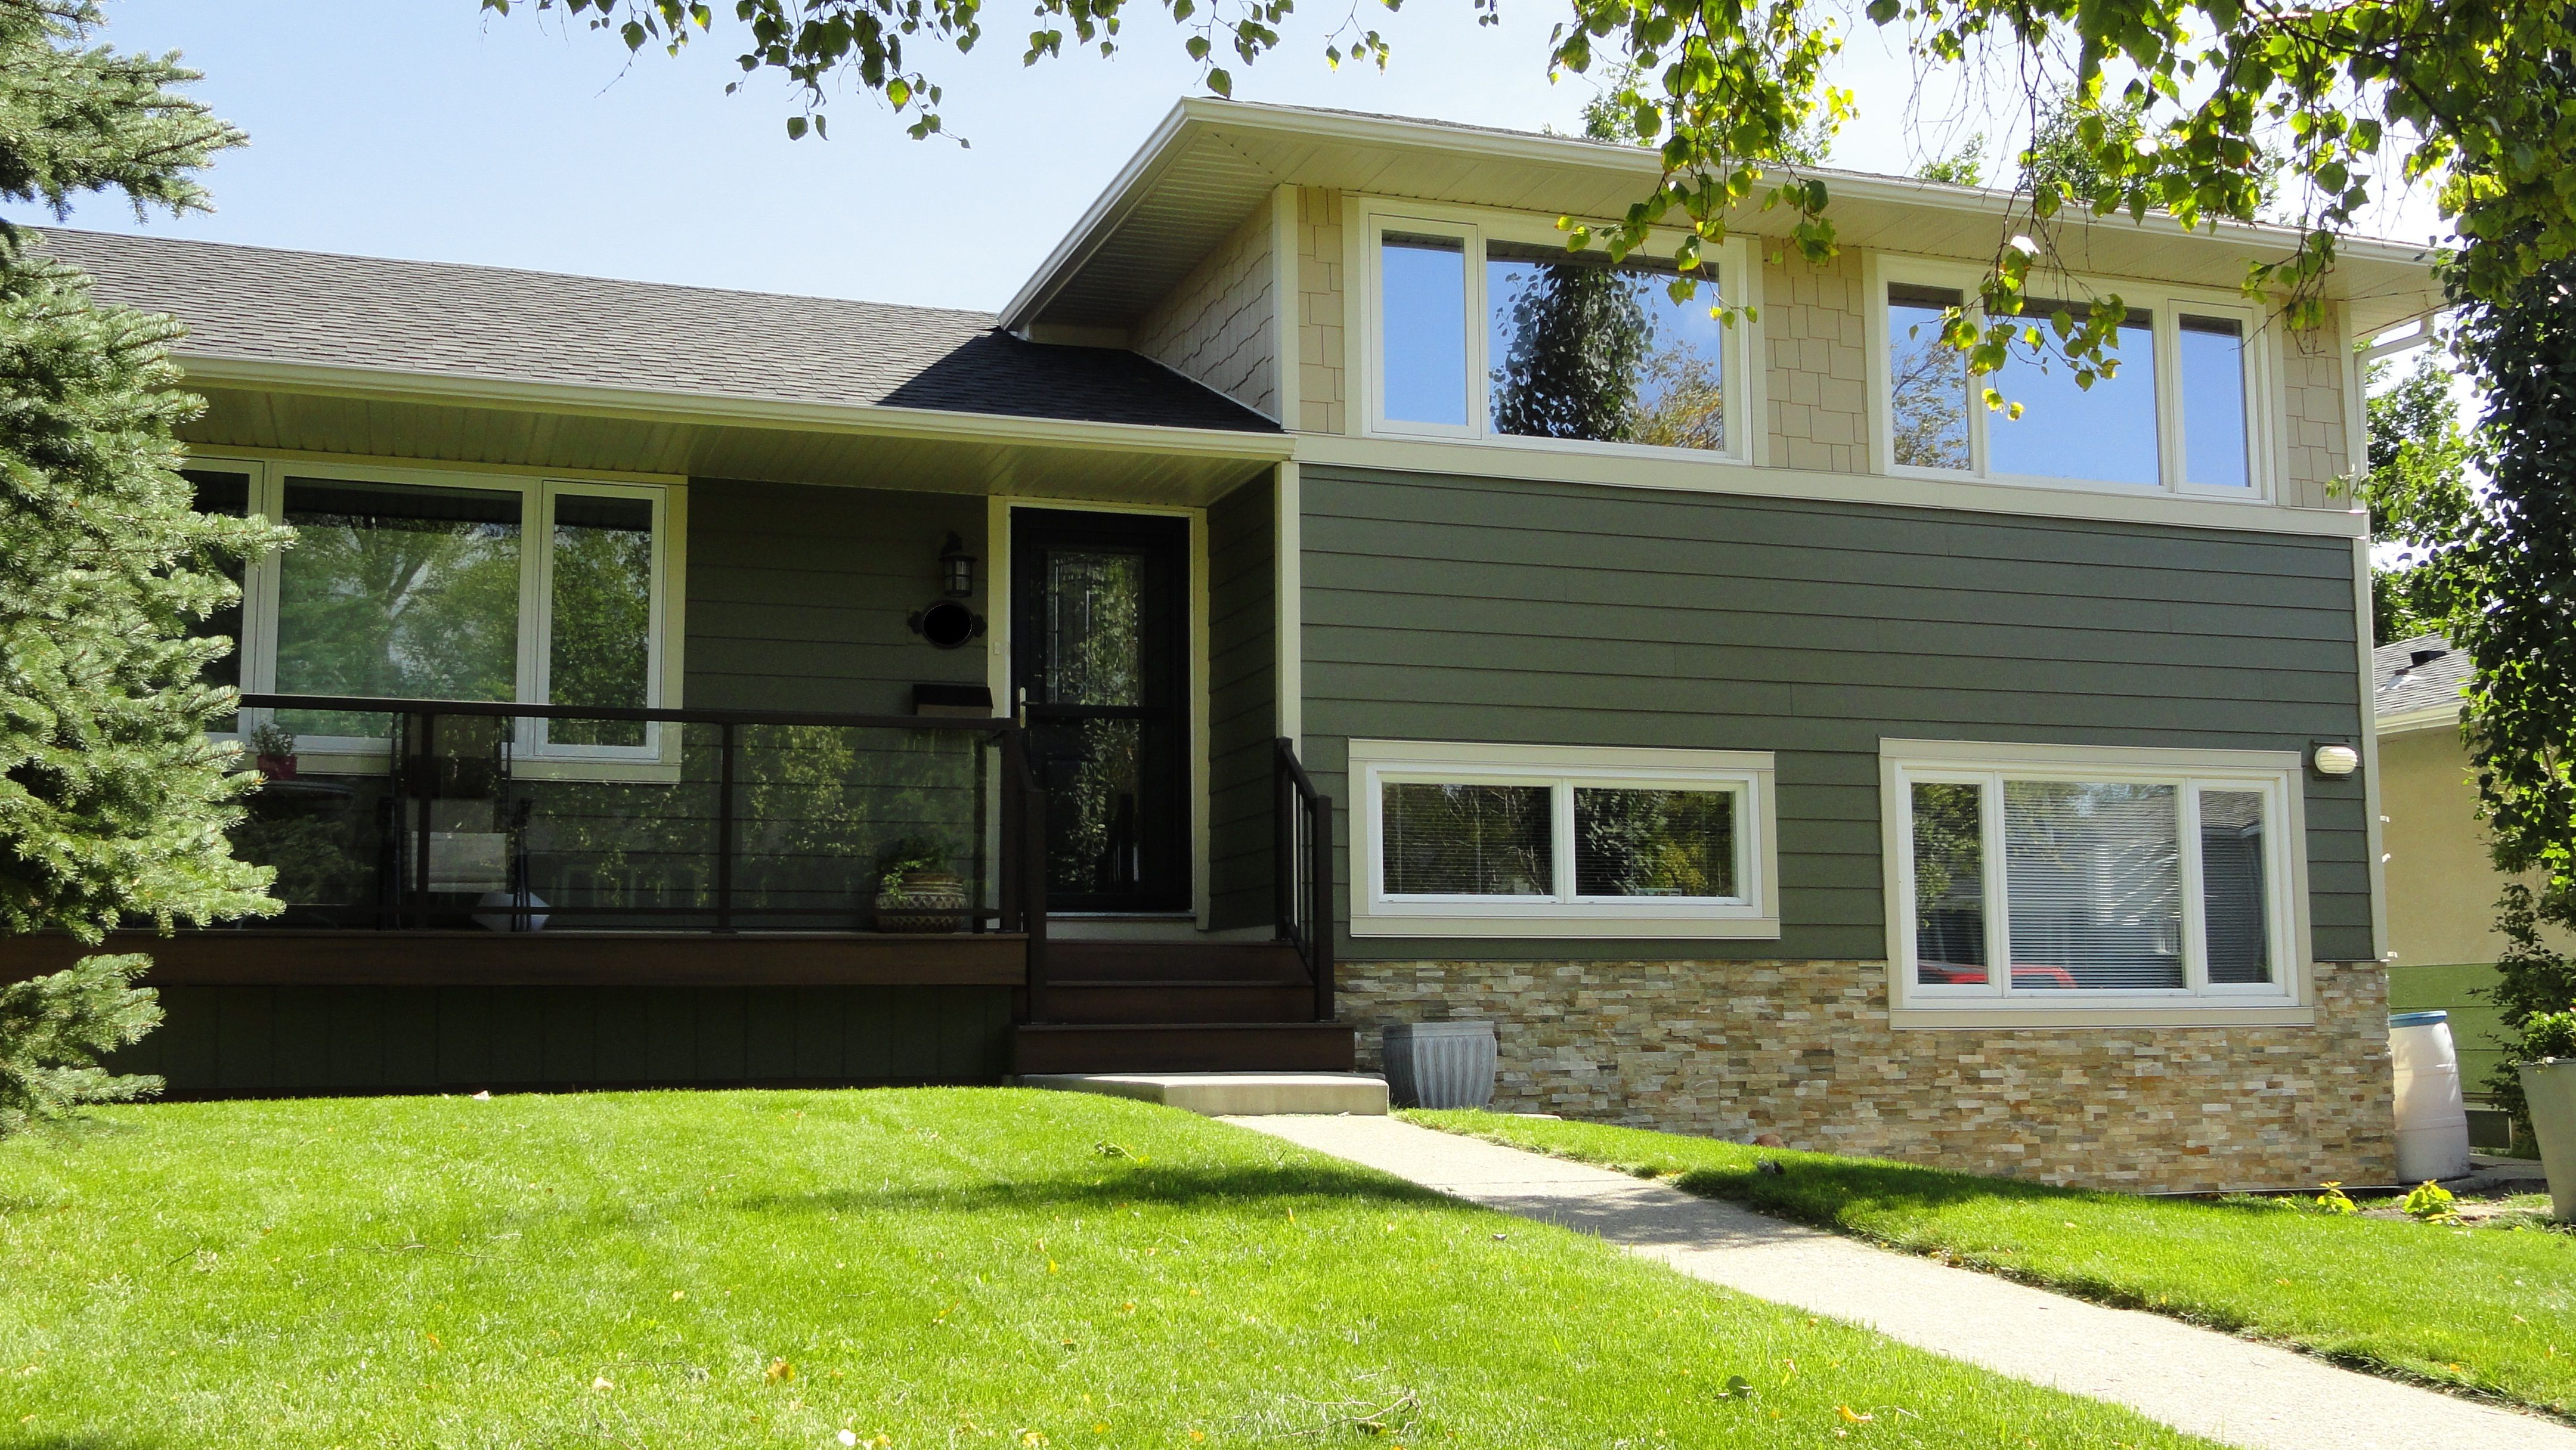 Image Result For James Hardie Frieze Board And Window Trim Windows And Patio Doors Exterior Renovation Exterior Remodel